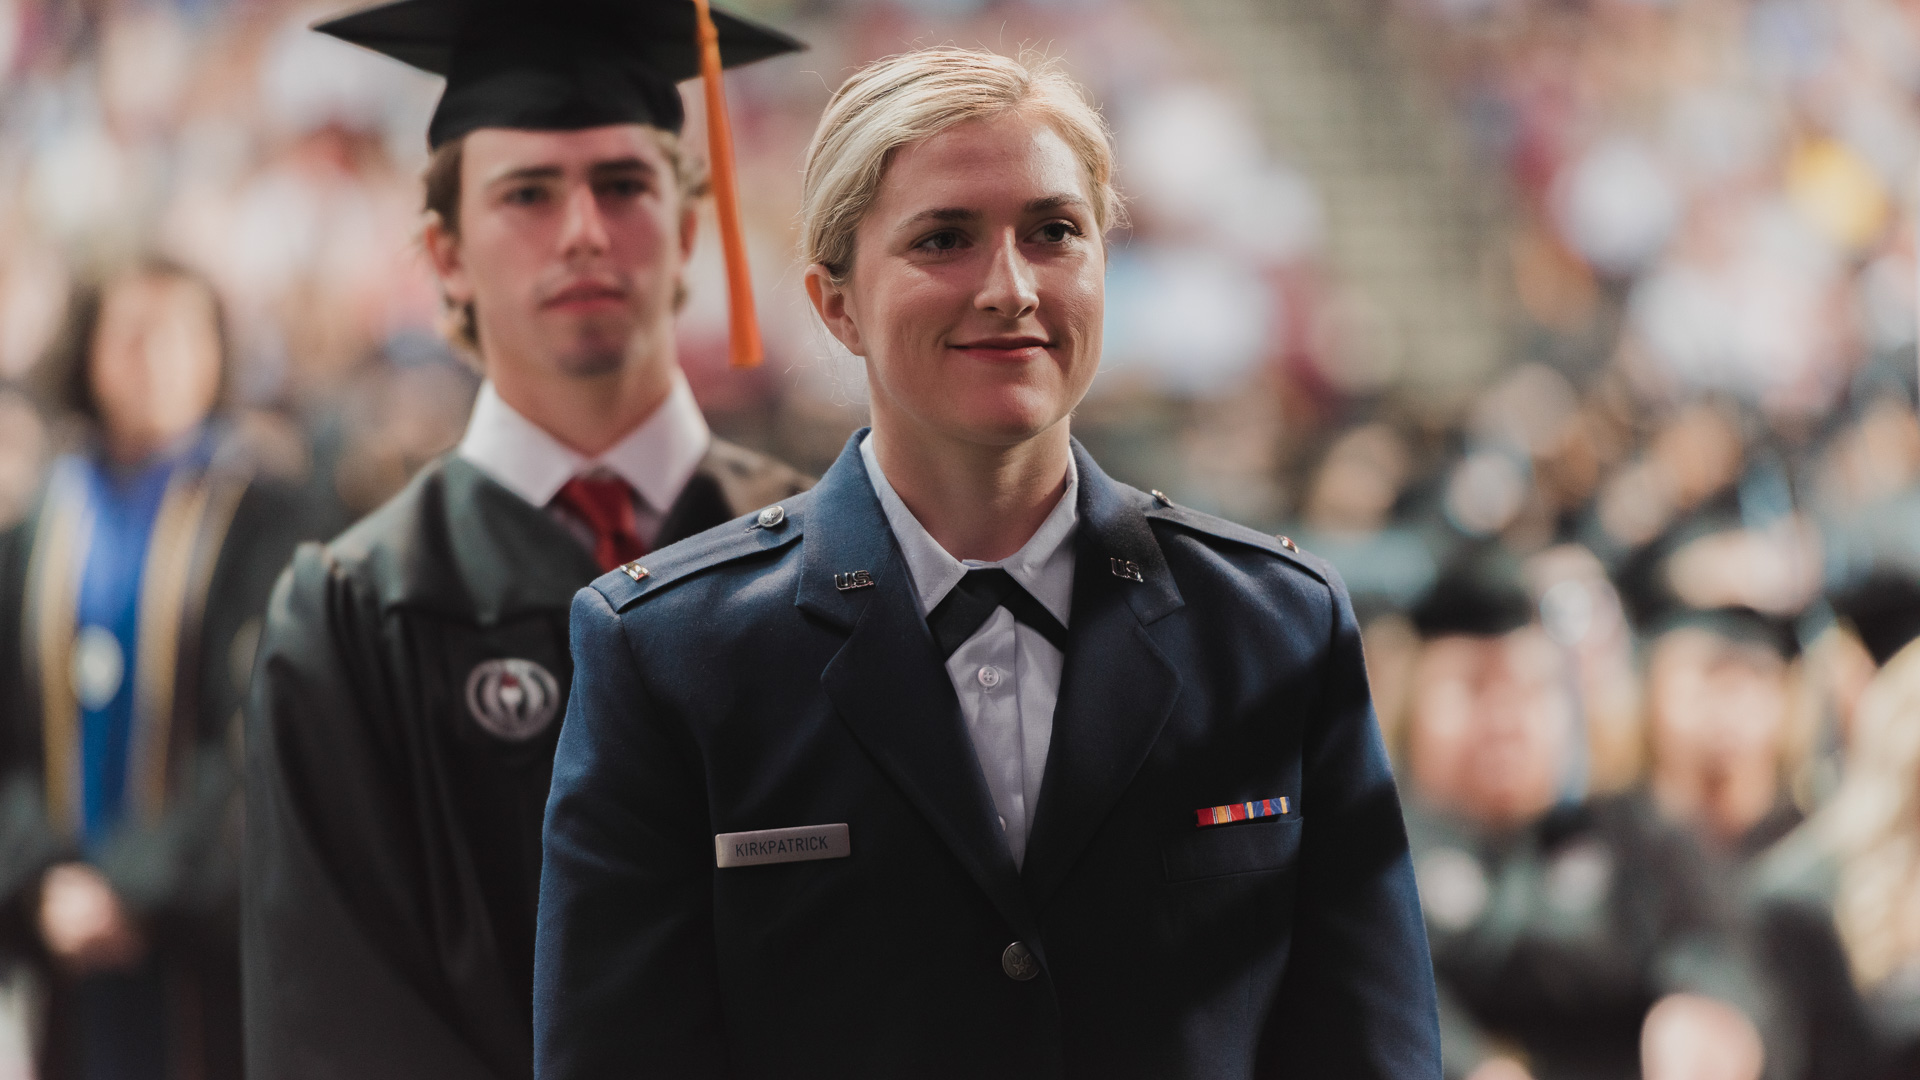 Military Students at Commencement